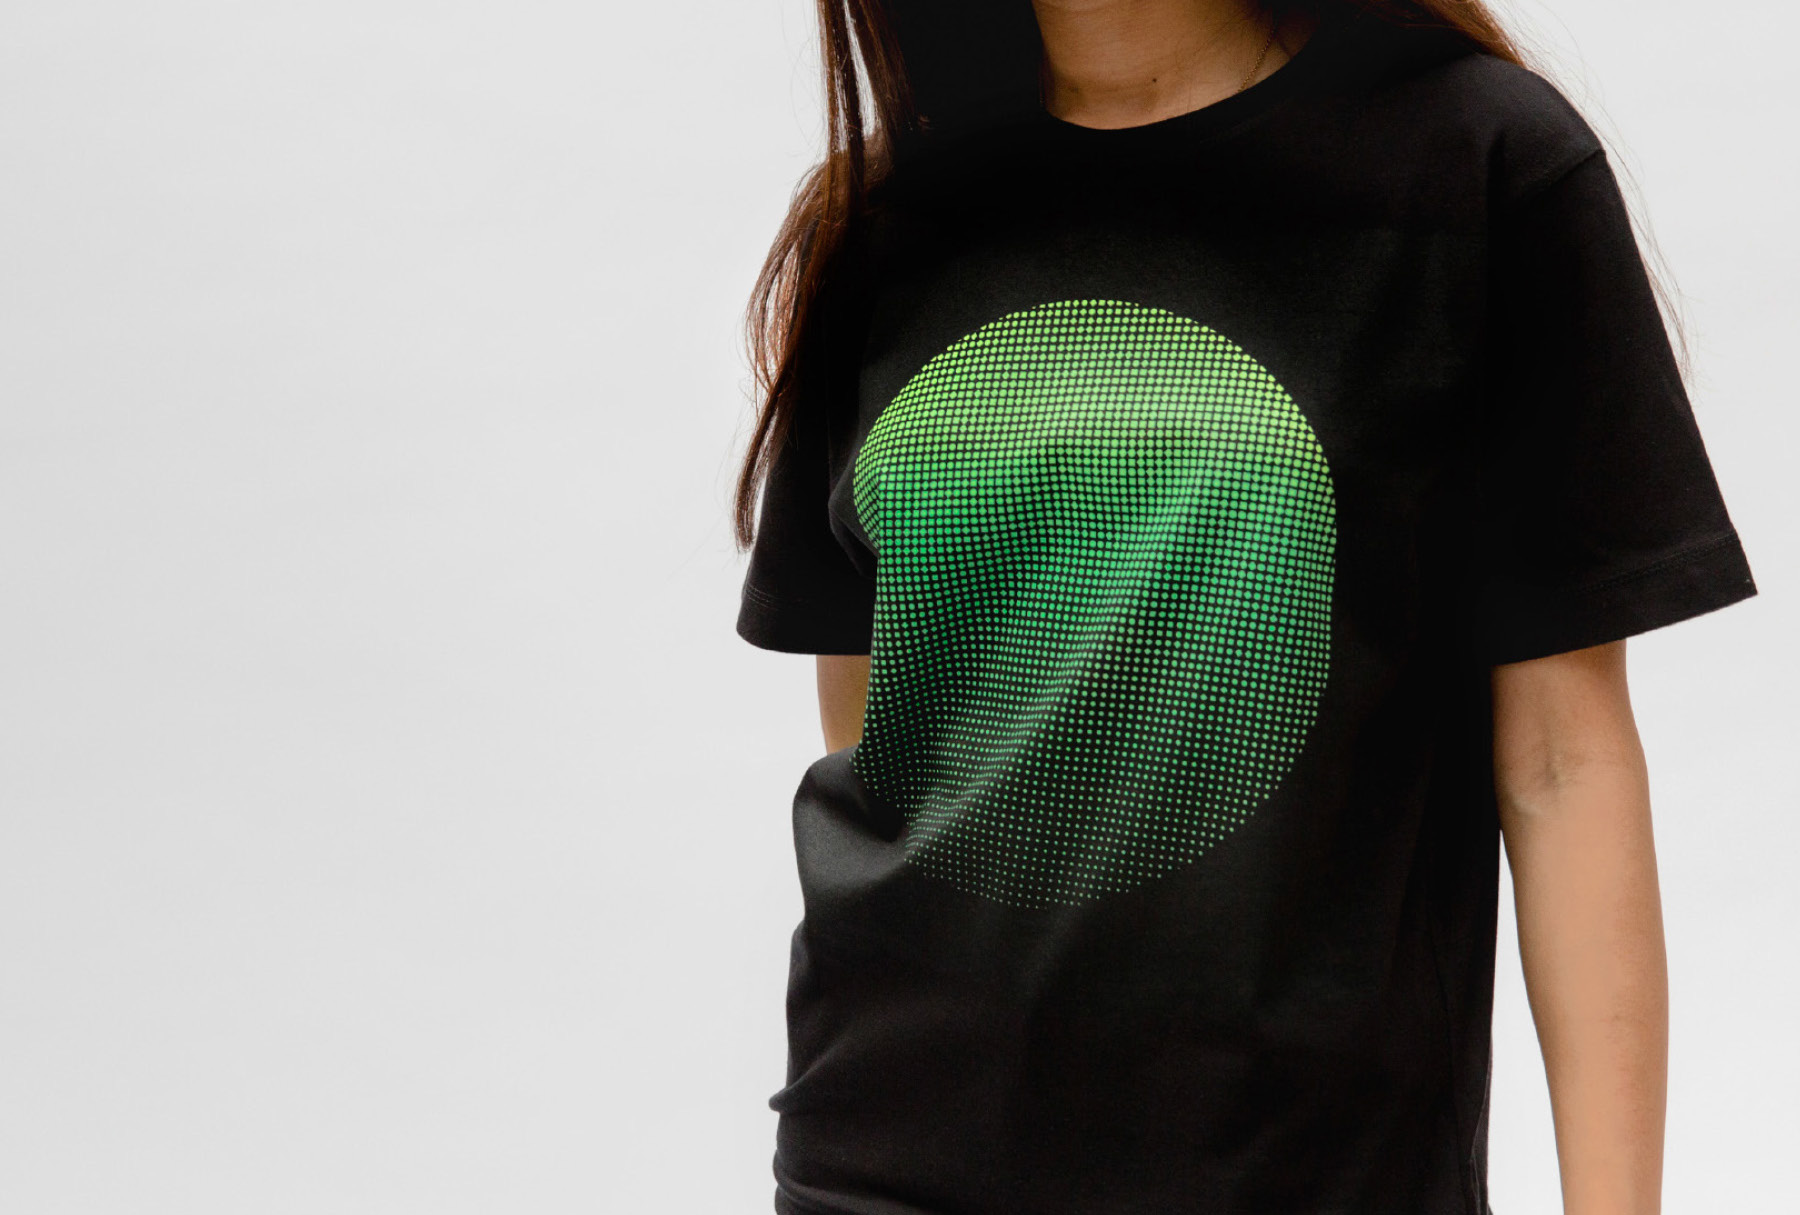 woman wearing black t-shirt with printed green circle